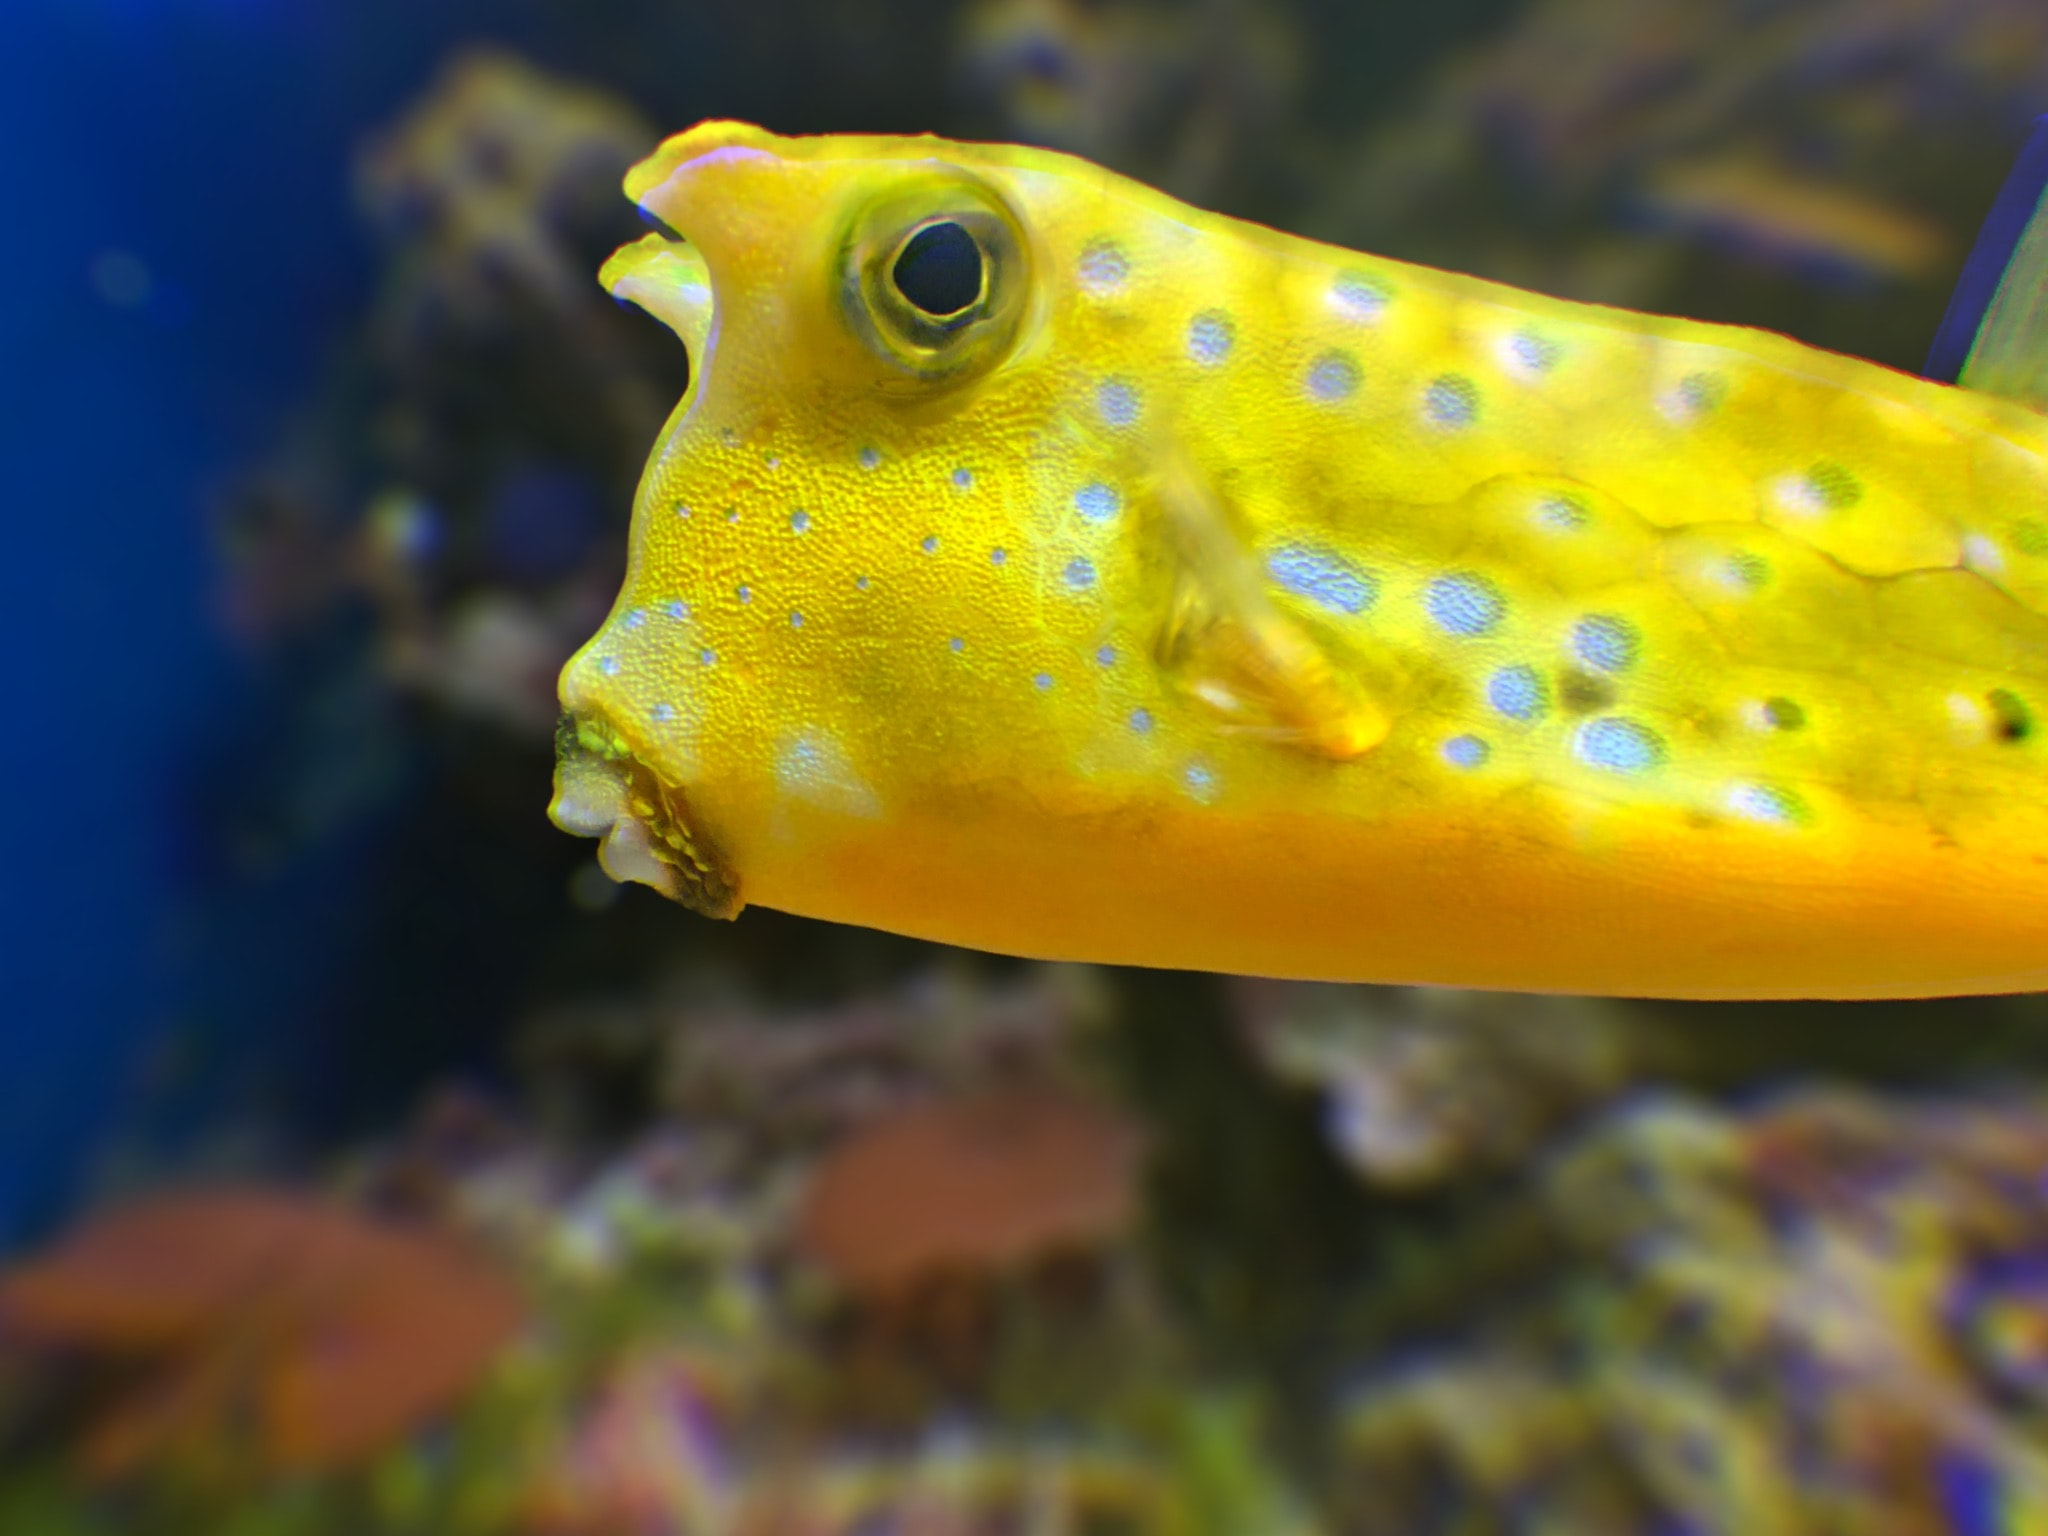 yellow fish in body of water